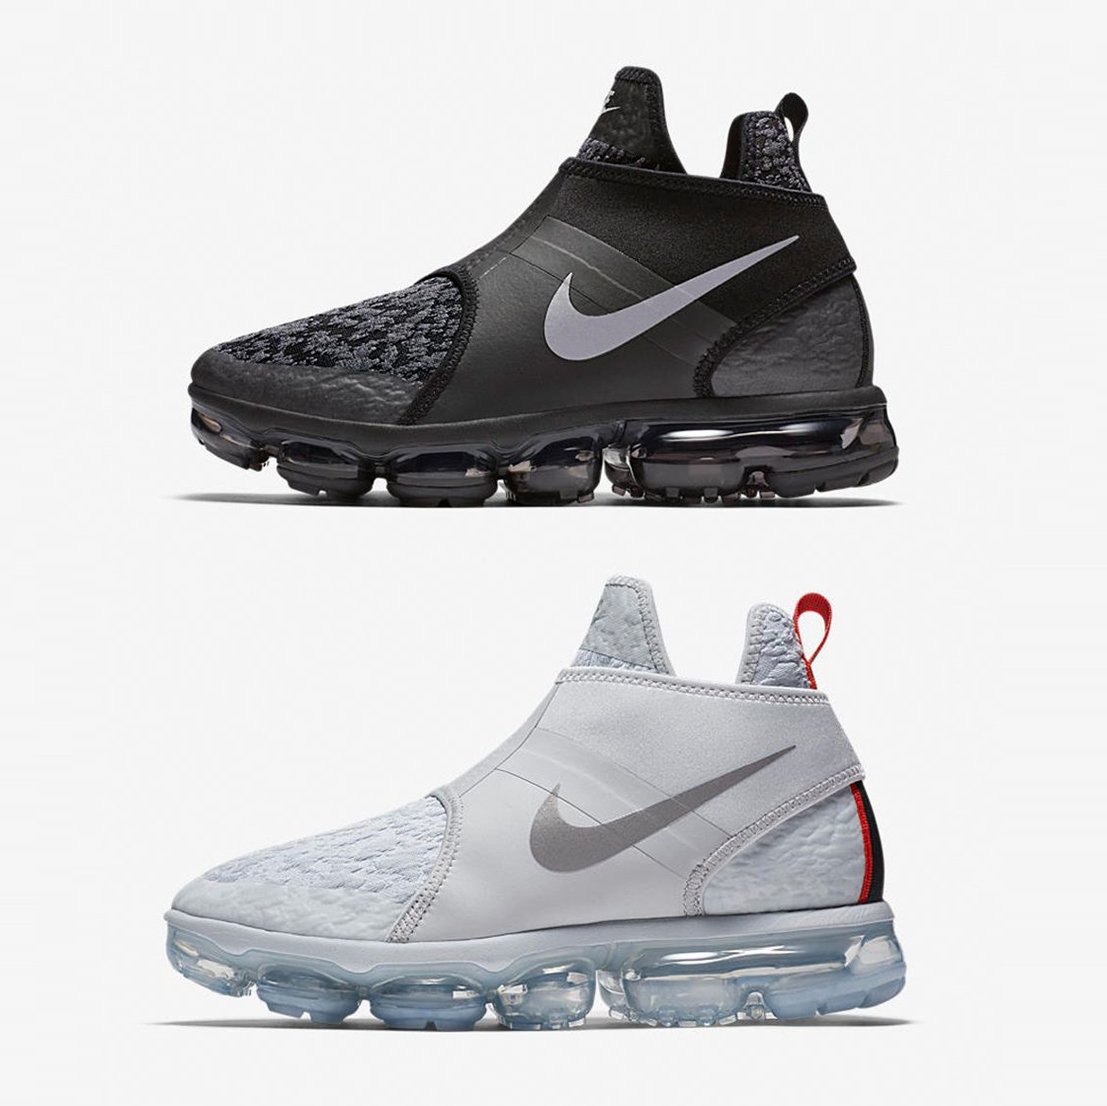 acebc9bb338 Just 10 minutes until  Nike s  span class  p-1 badge-. Just 10 minutes  until  Nike s Air Vapormax Chukka Slip sneakers are dropping!